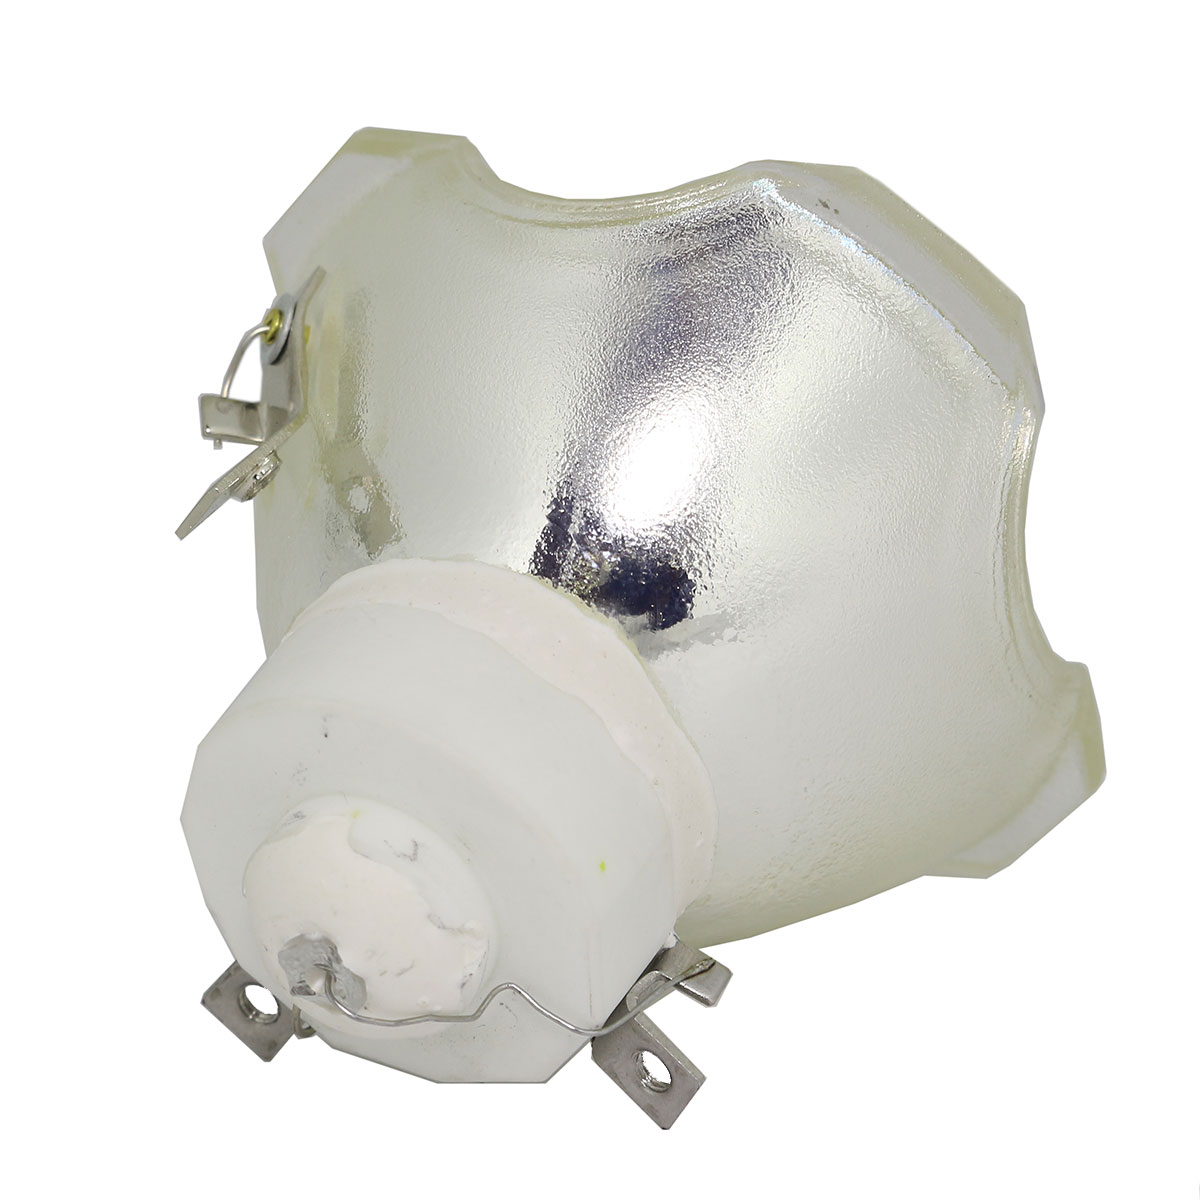 Lutema Economy Bulb for Mitsubishi LW-6100 Projector (Lamp Only) - image 1 of 5